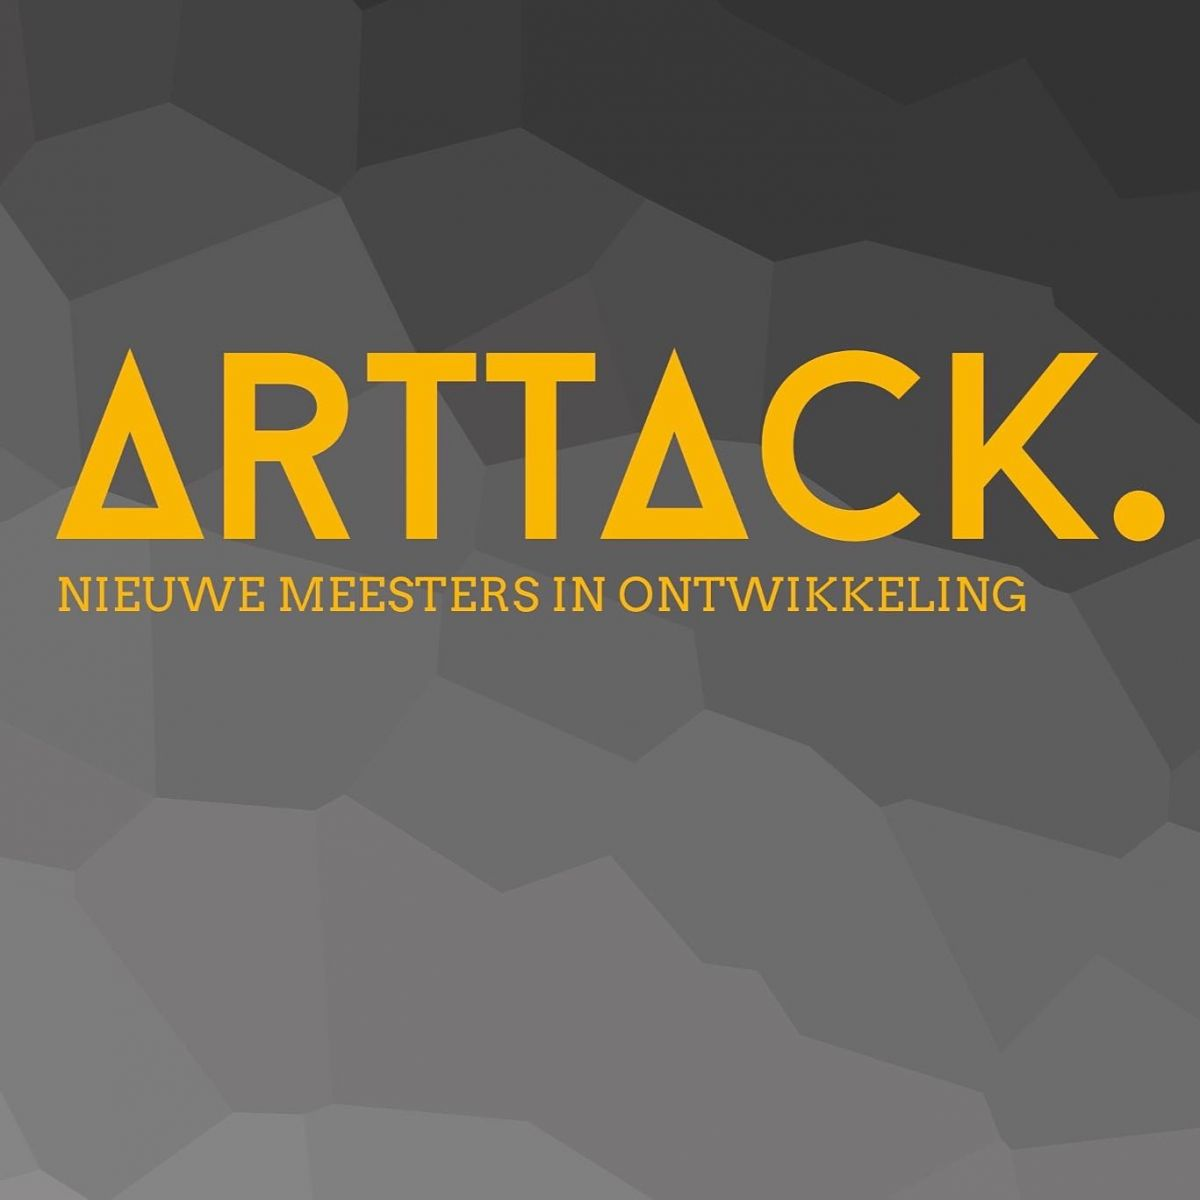 tl_files/userfiles/paginas/ARTTACK_ontwerp.jpg